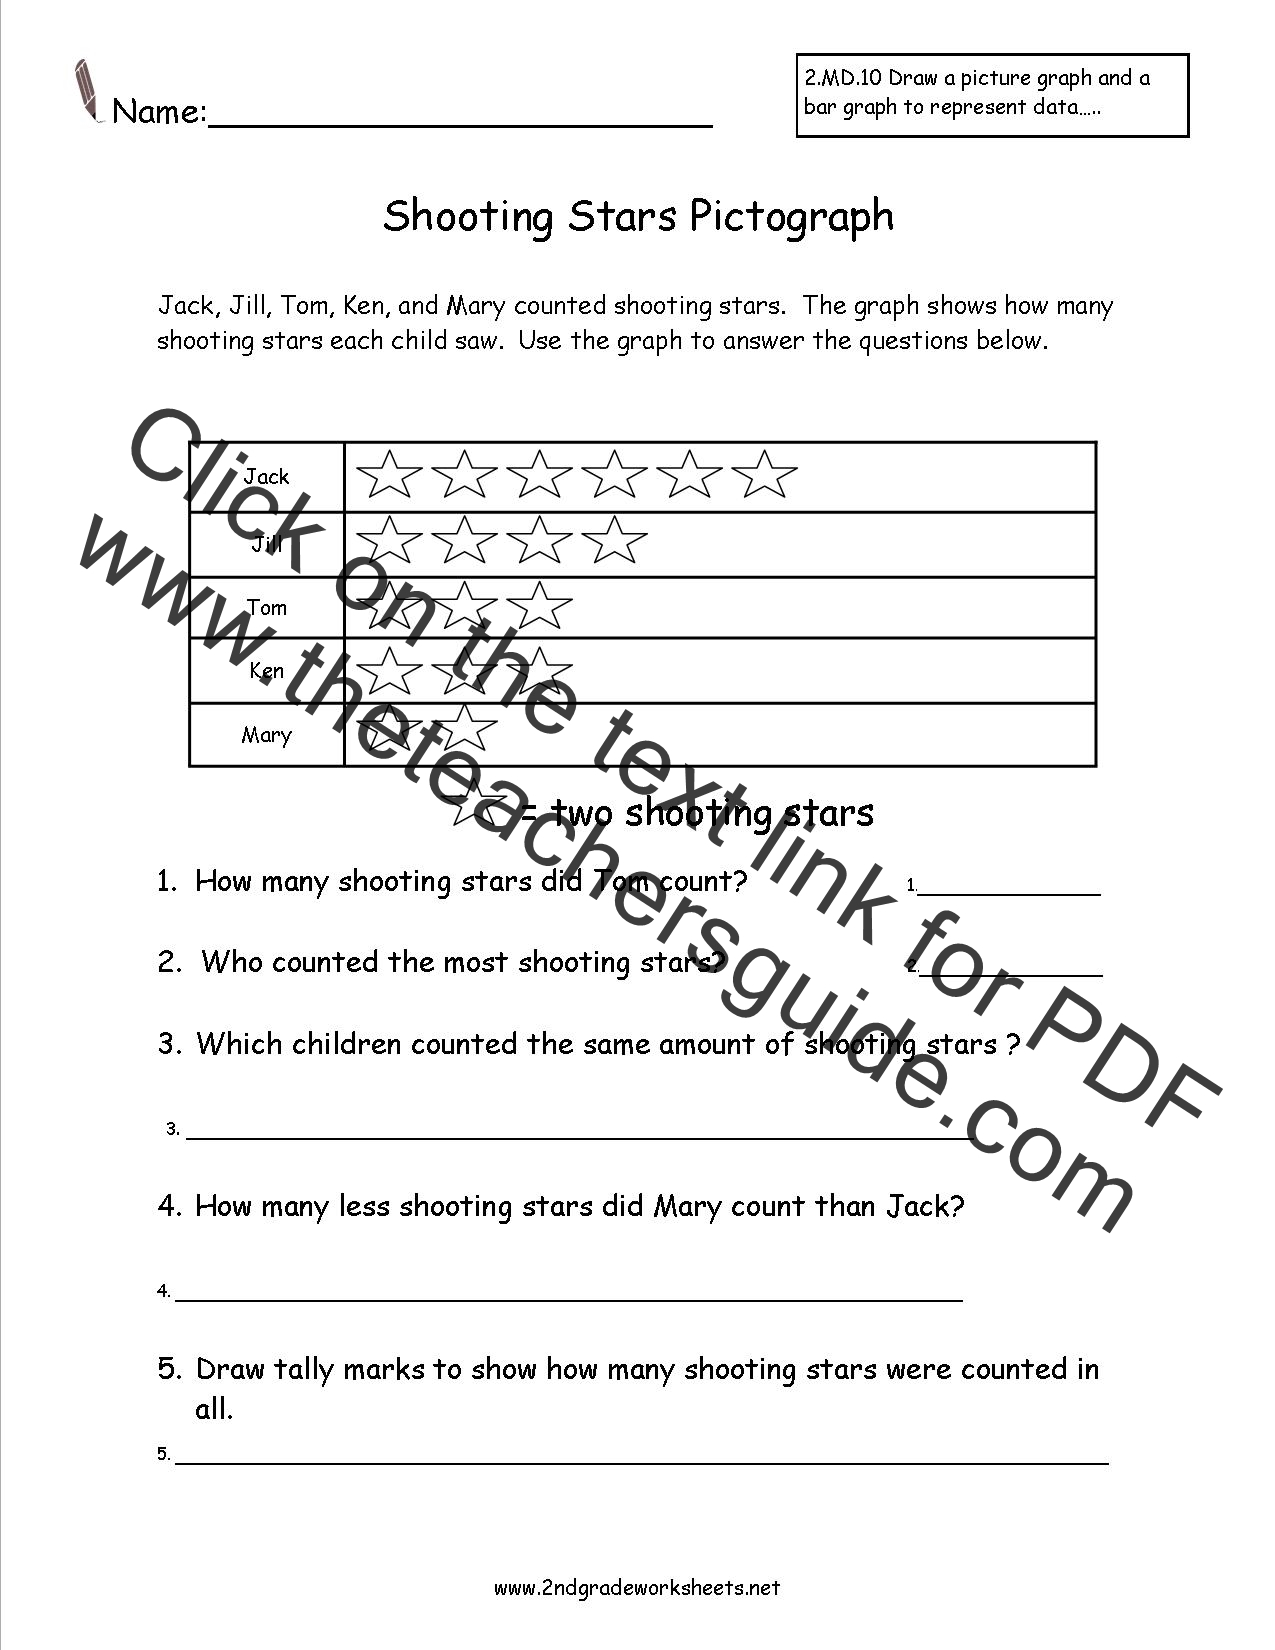 worksheet Second Grade Reading Worksheets grade reading and creating pictograph worksheets shooting stars worksheet